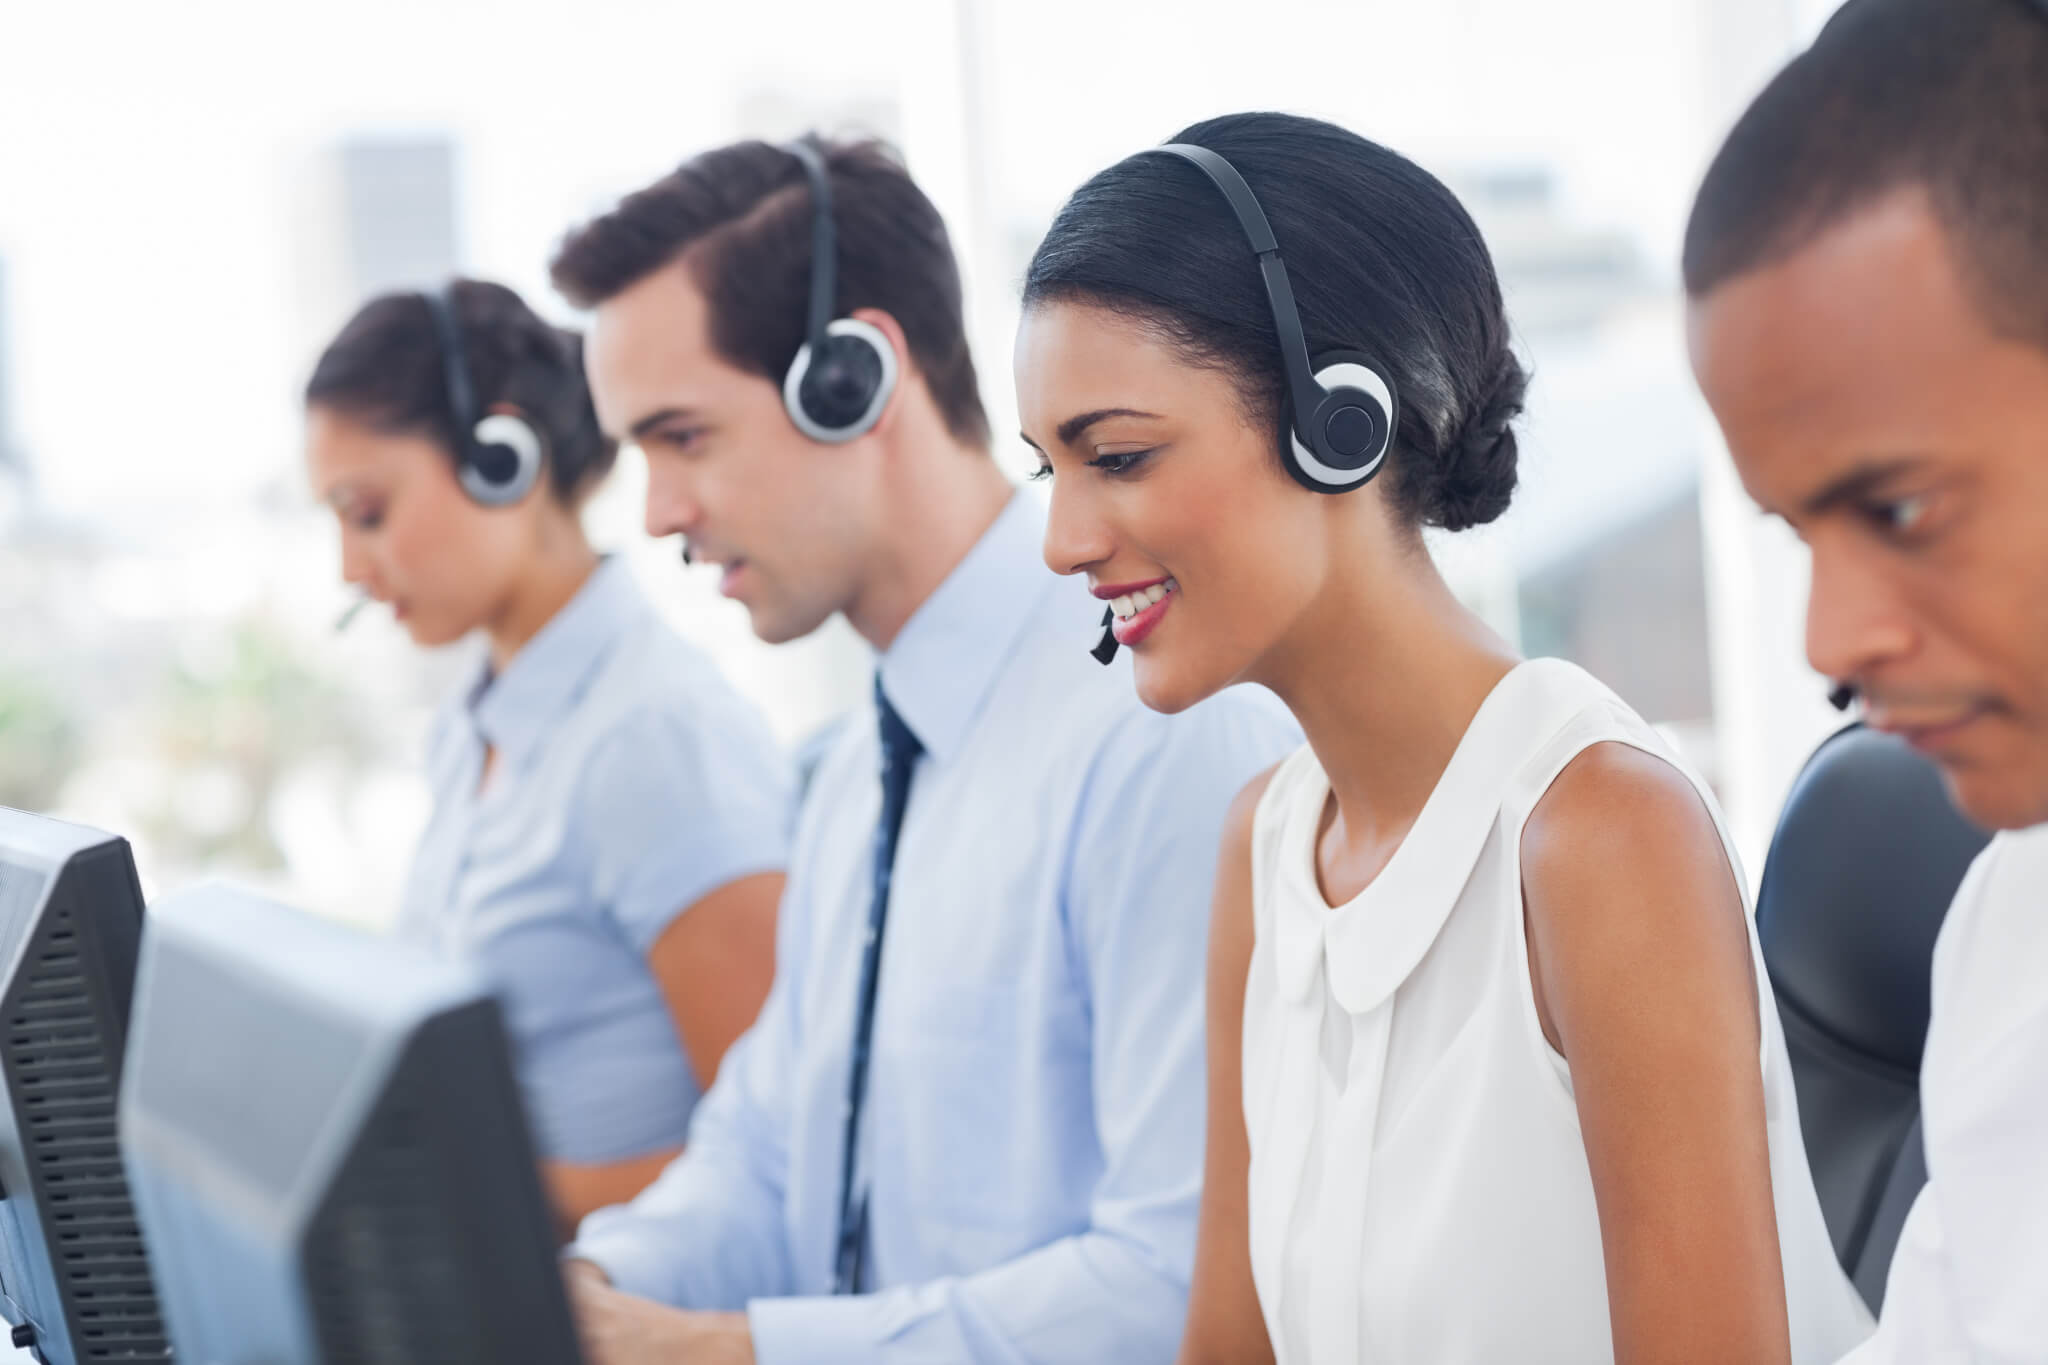 Smiling call center employees sitting in line with their headset